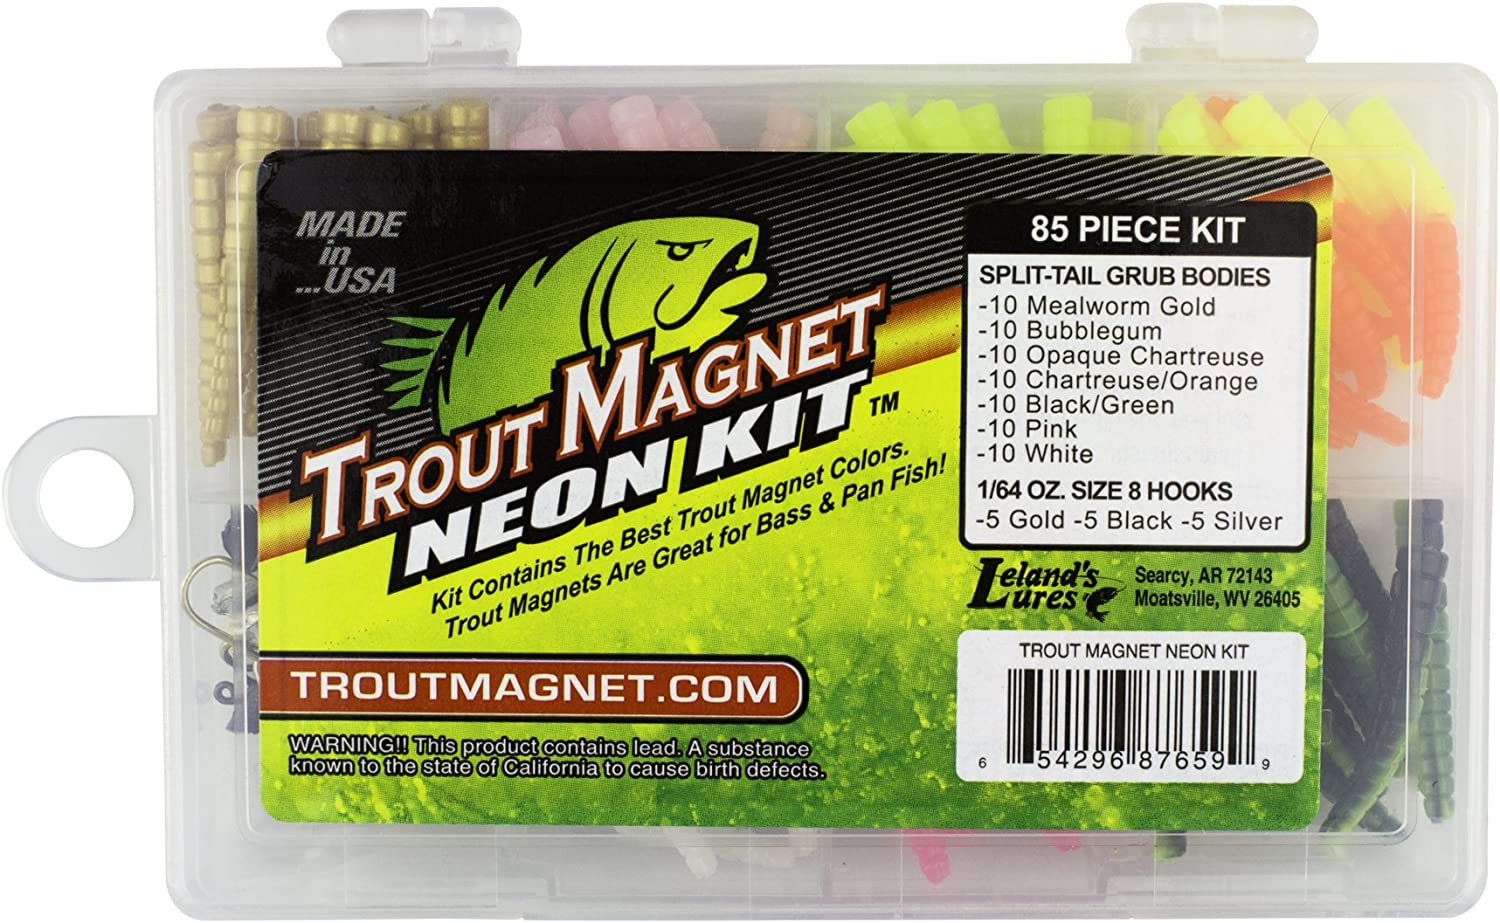 Trout Magnet Neon Kit - 70 Grub Bodies and 15 Size 8 Hooks.